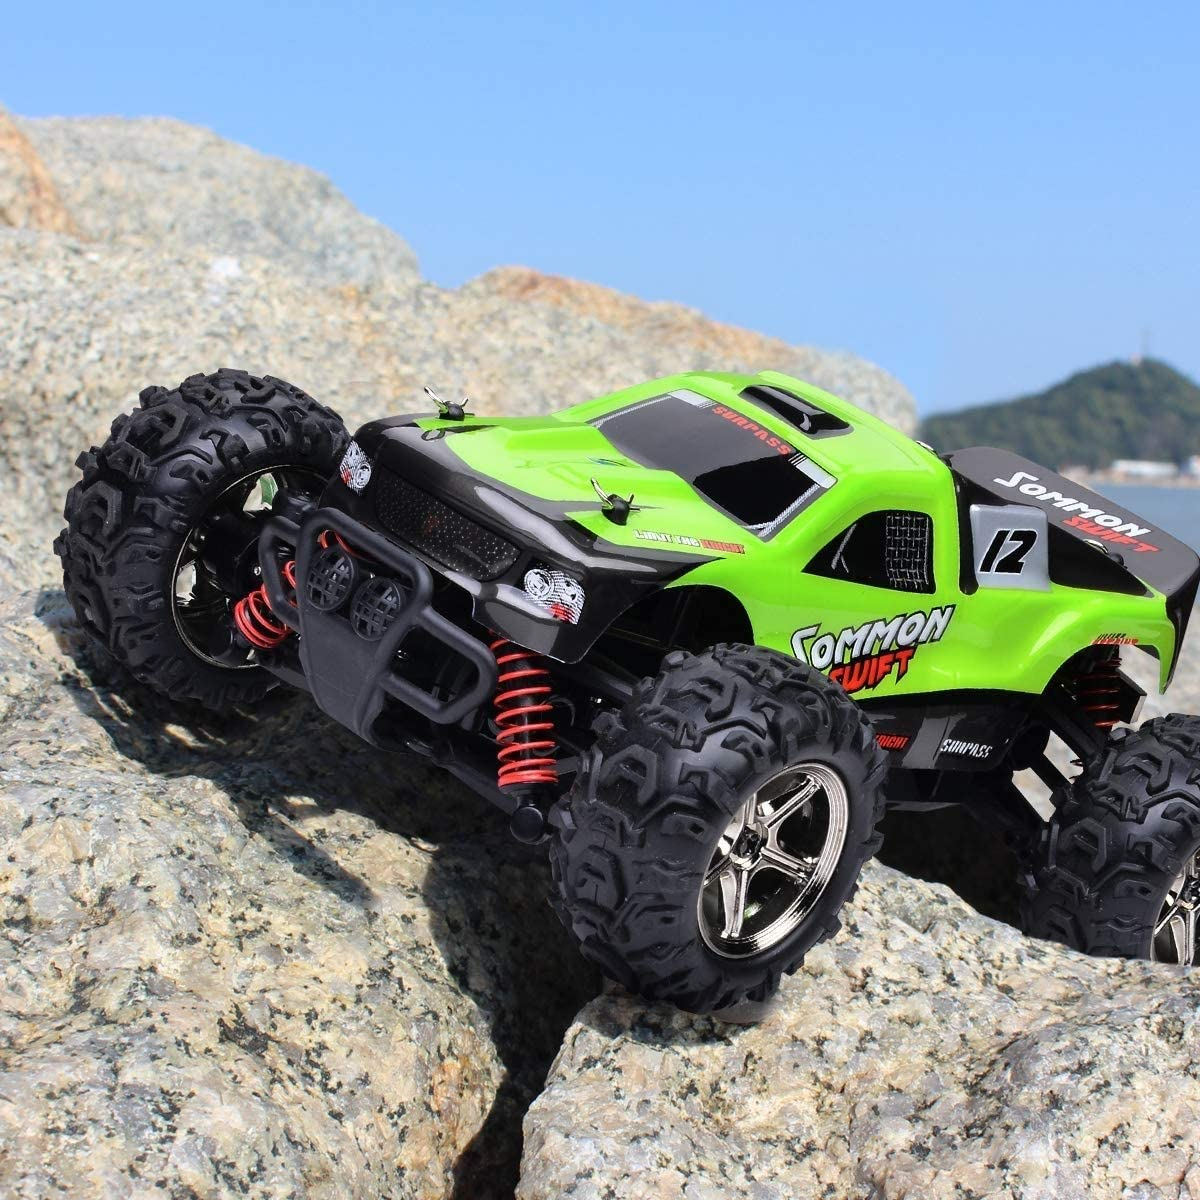 CGIIGI Remote Control car 2.4 GHZ high-Speed Racing car with 2 Rechargeable Lithium Batteries Electric Remote Control car 1:24 Scale Truck Radio Remote Control Truck Off-Road Children's Truck